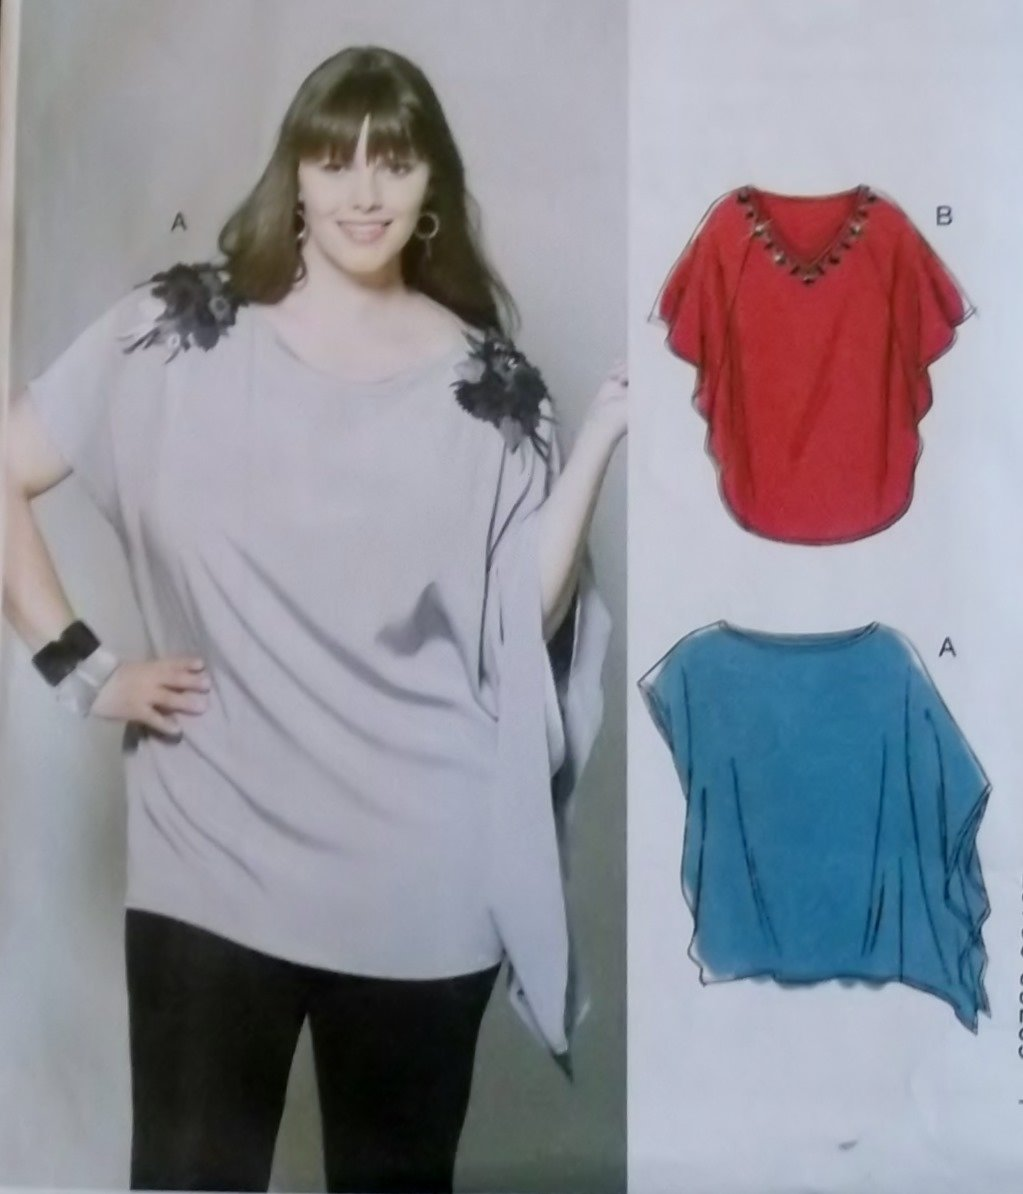 Easy Women's Loose Pullover Tunics McCalls M 6204 Pattern, Plus Size 18W To 24W, Uncut